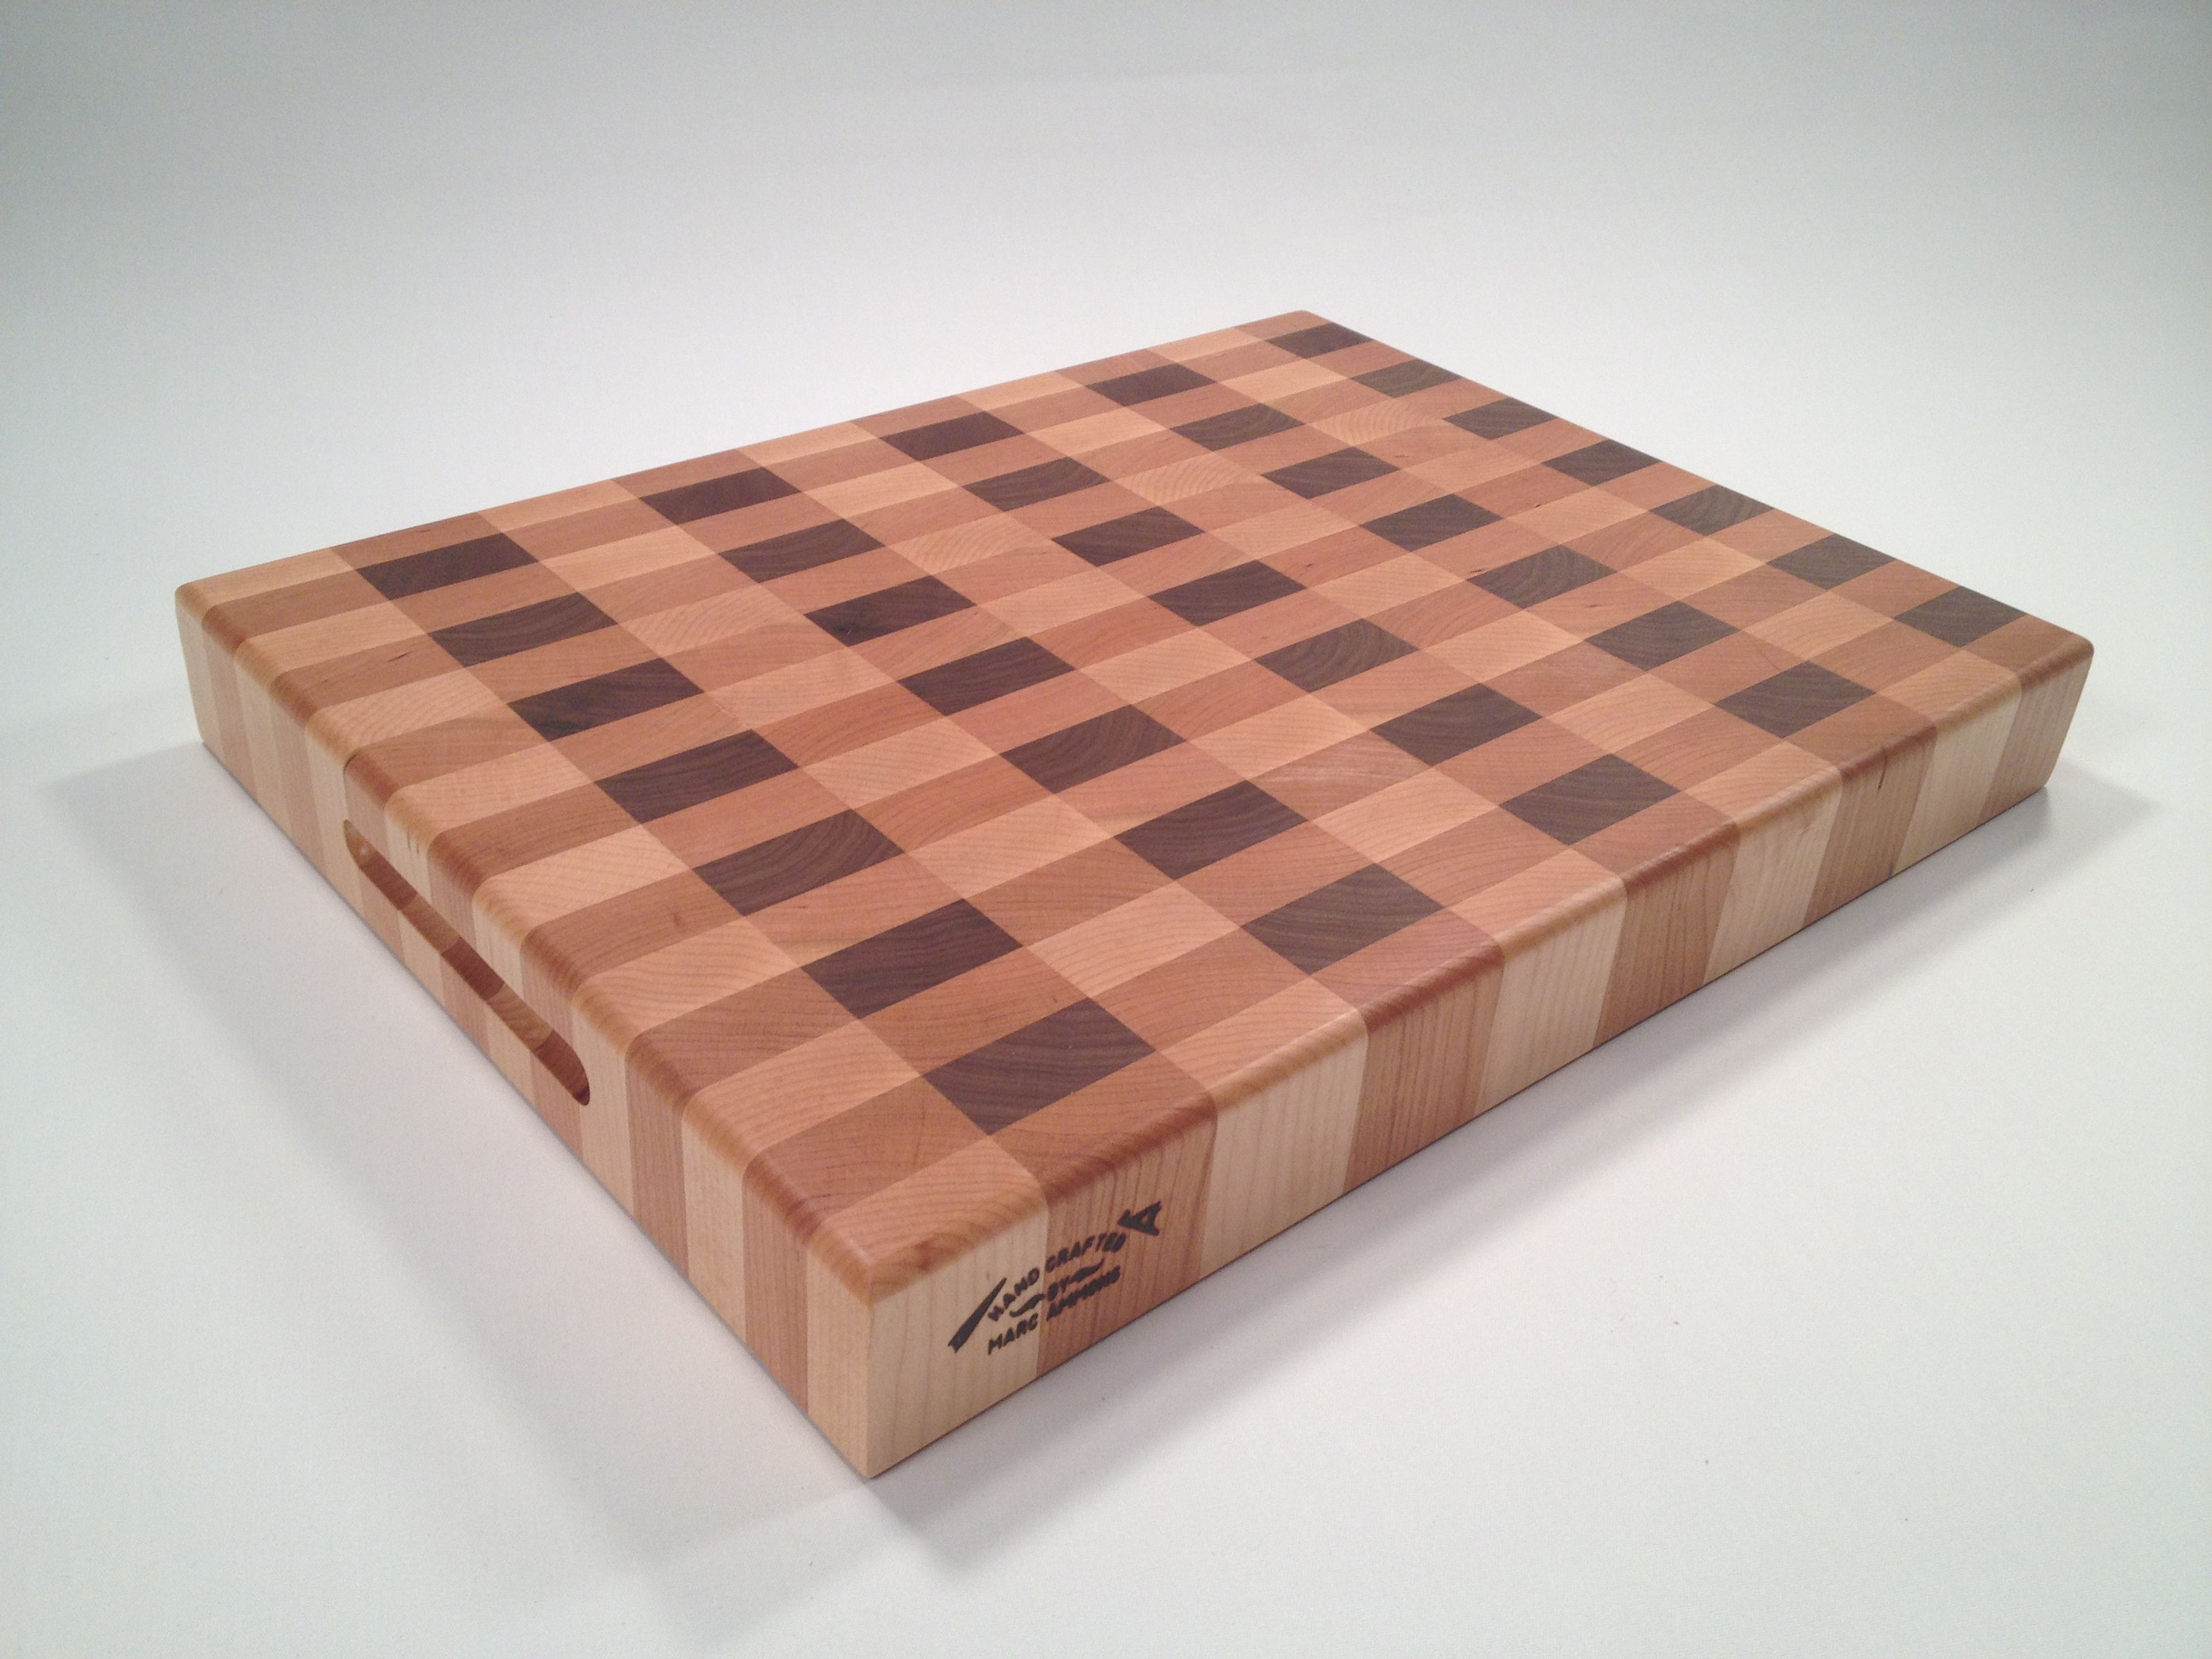 Unusual Cutting Boards Good Wood Cutting Board This Unique Handcrafted Wood